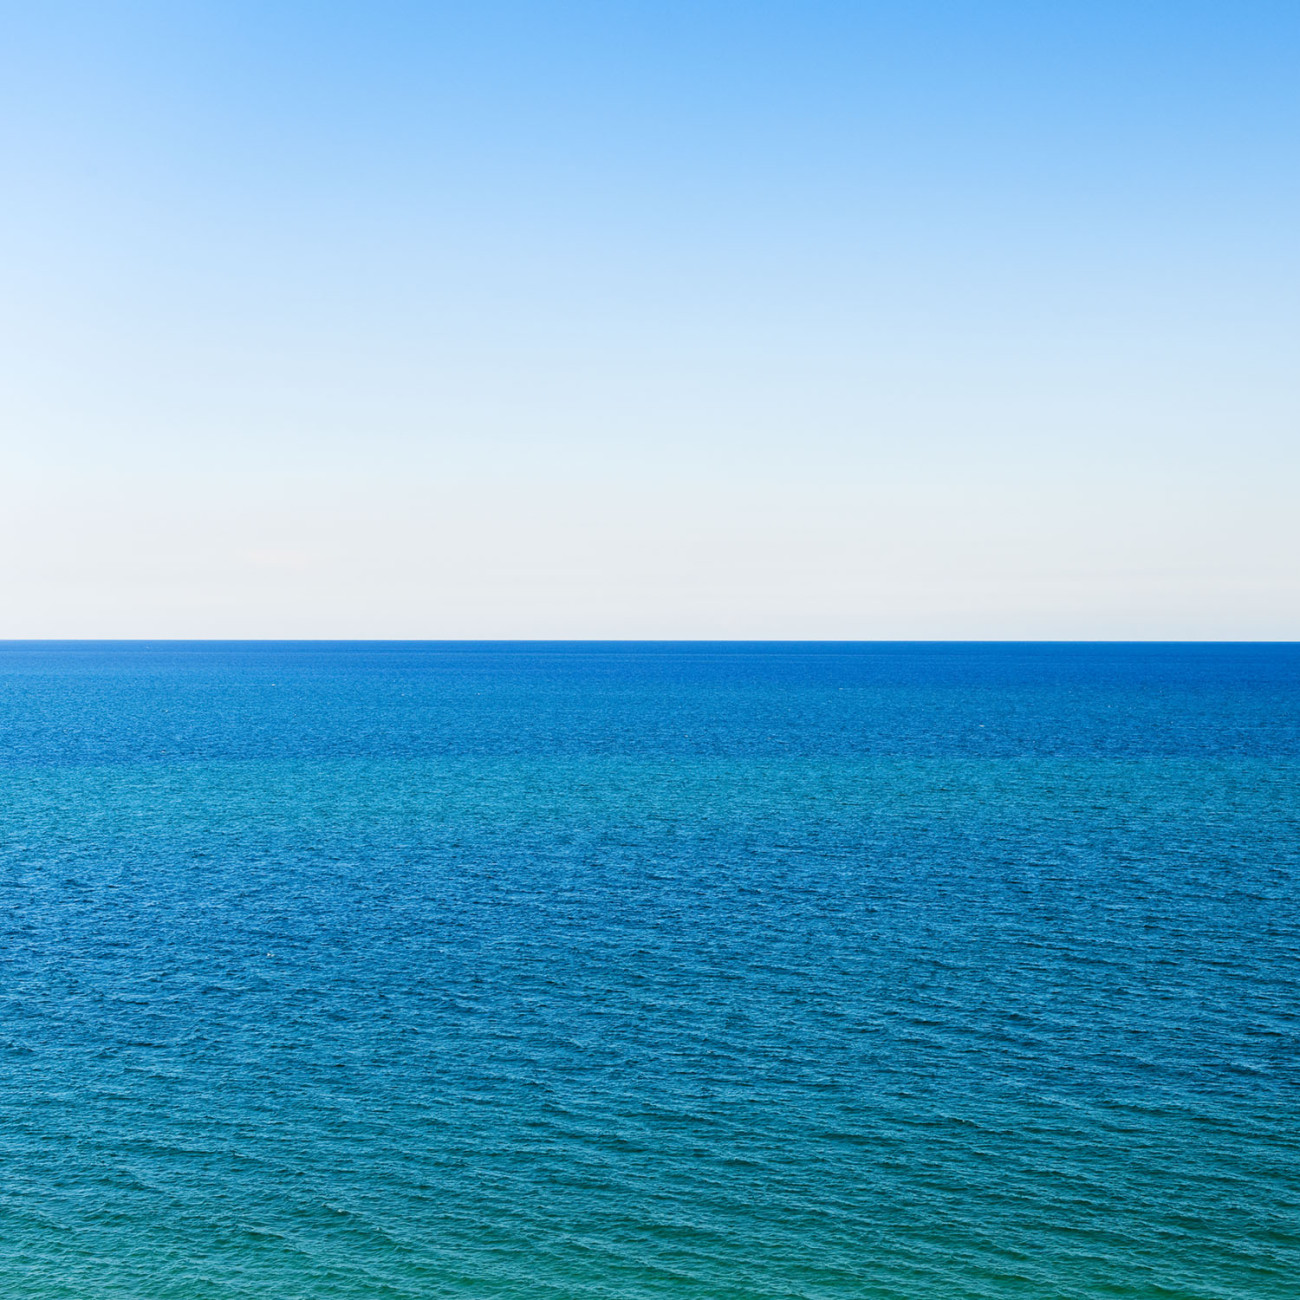 Clear sky and Atlantic Ocean, Florida, 2009